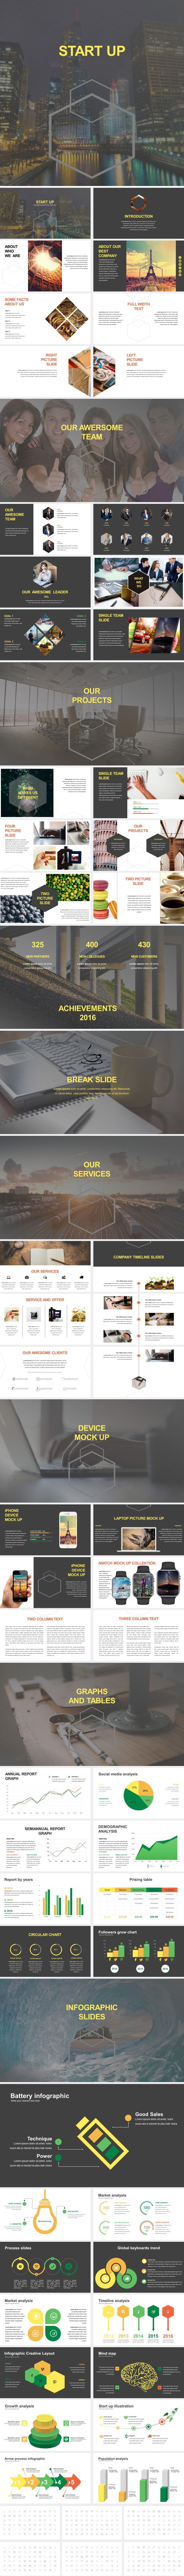 Start Up Business Keynote Template - Business Keynote Templates